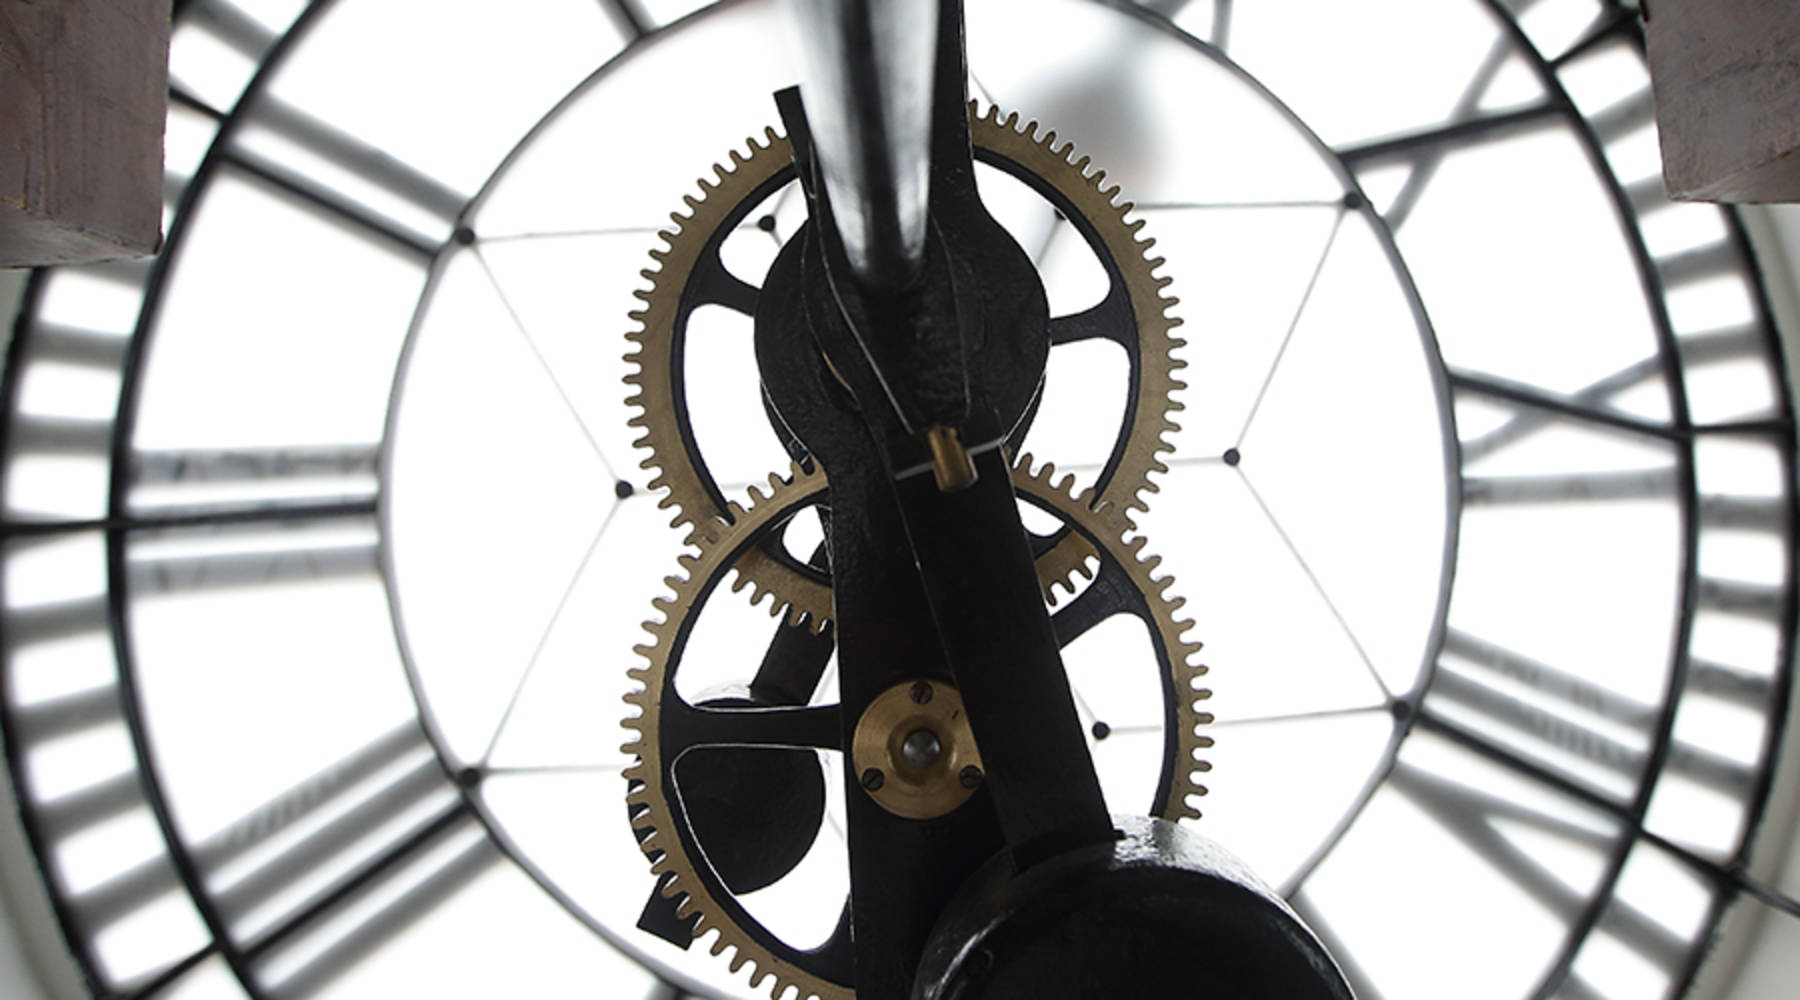 Time may be up for timekeeping radio stations - Marketplace